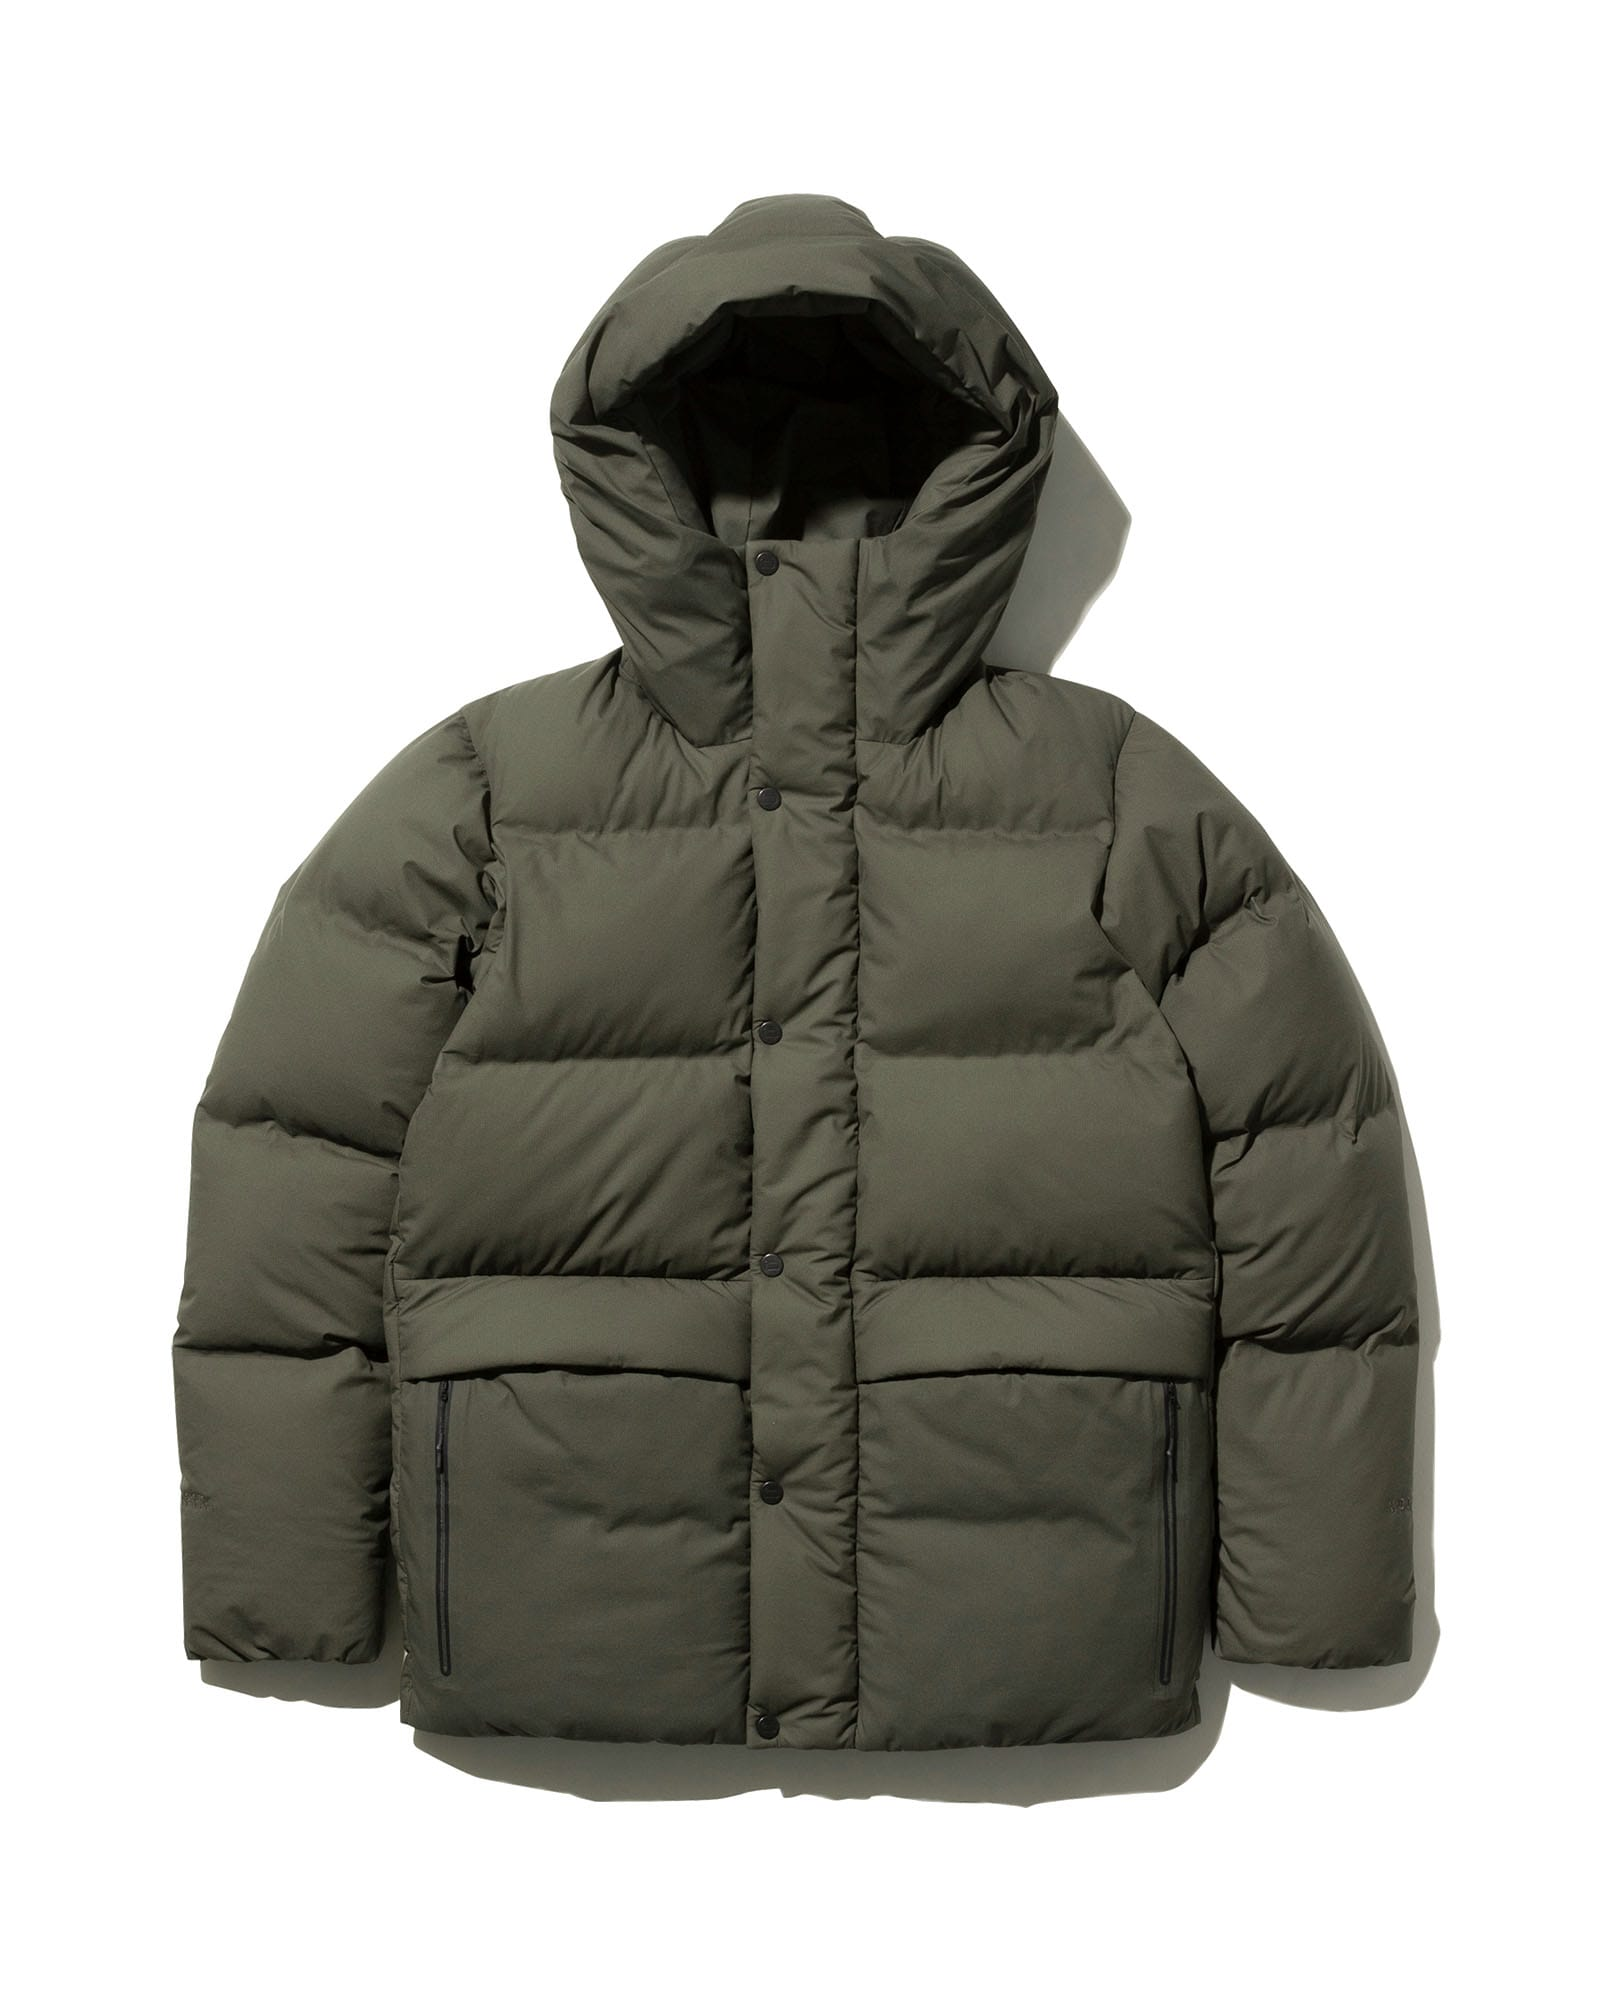 GTX LIGHT PUFFY DOWN PARKA